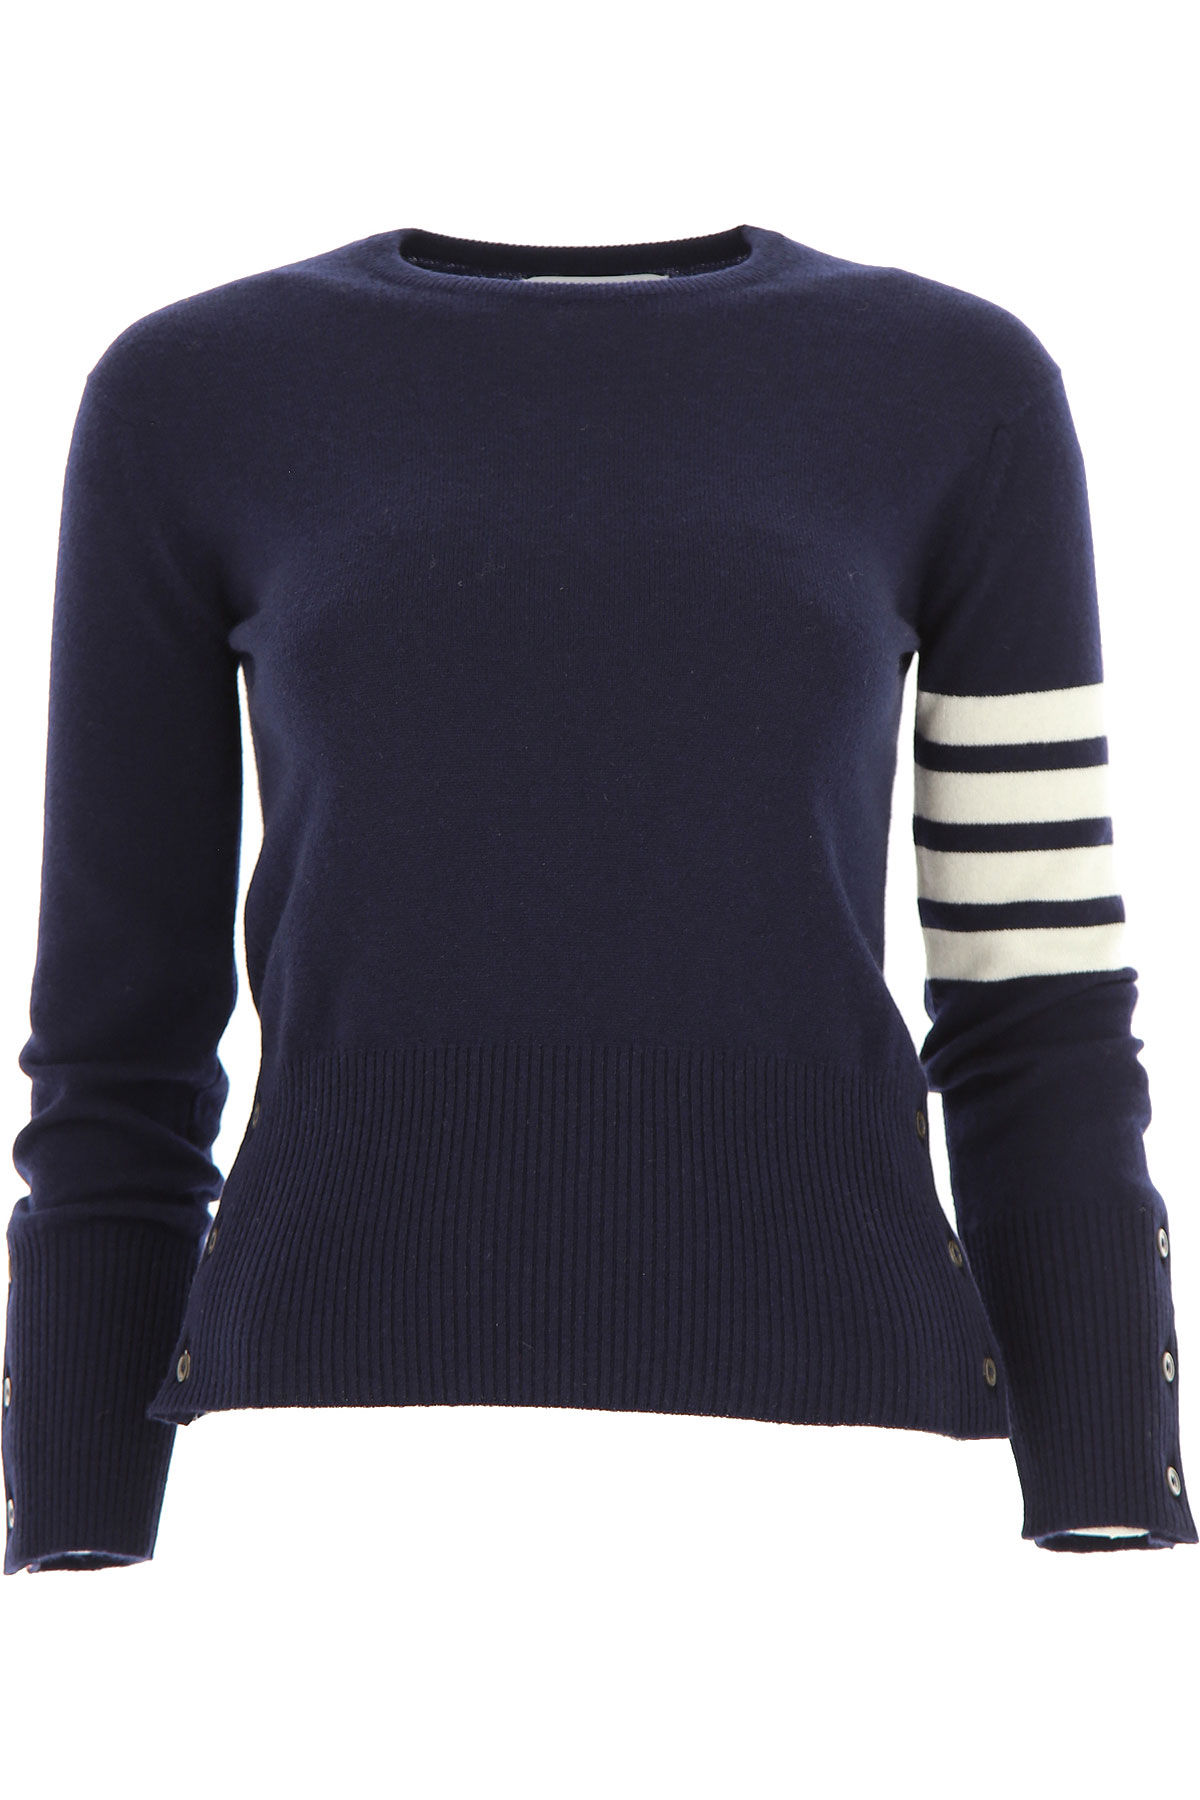 THOM BROWNE Sweater for Women Jumper On Sale, Navy Blue, Cashmere, 2019, 4 6